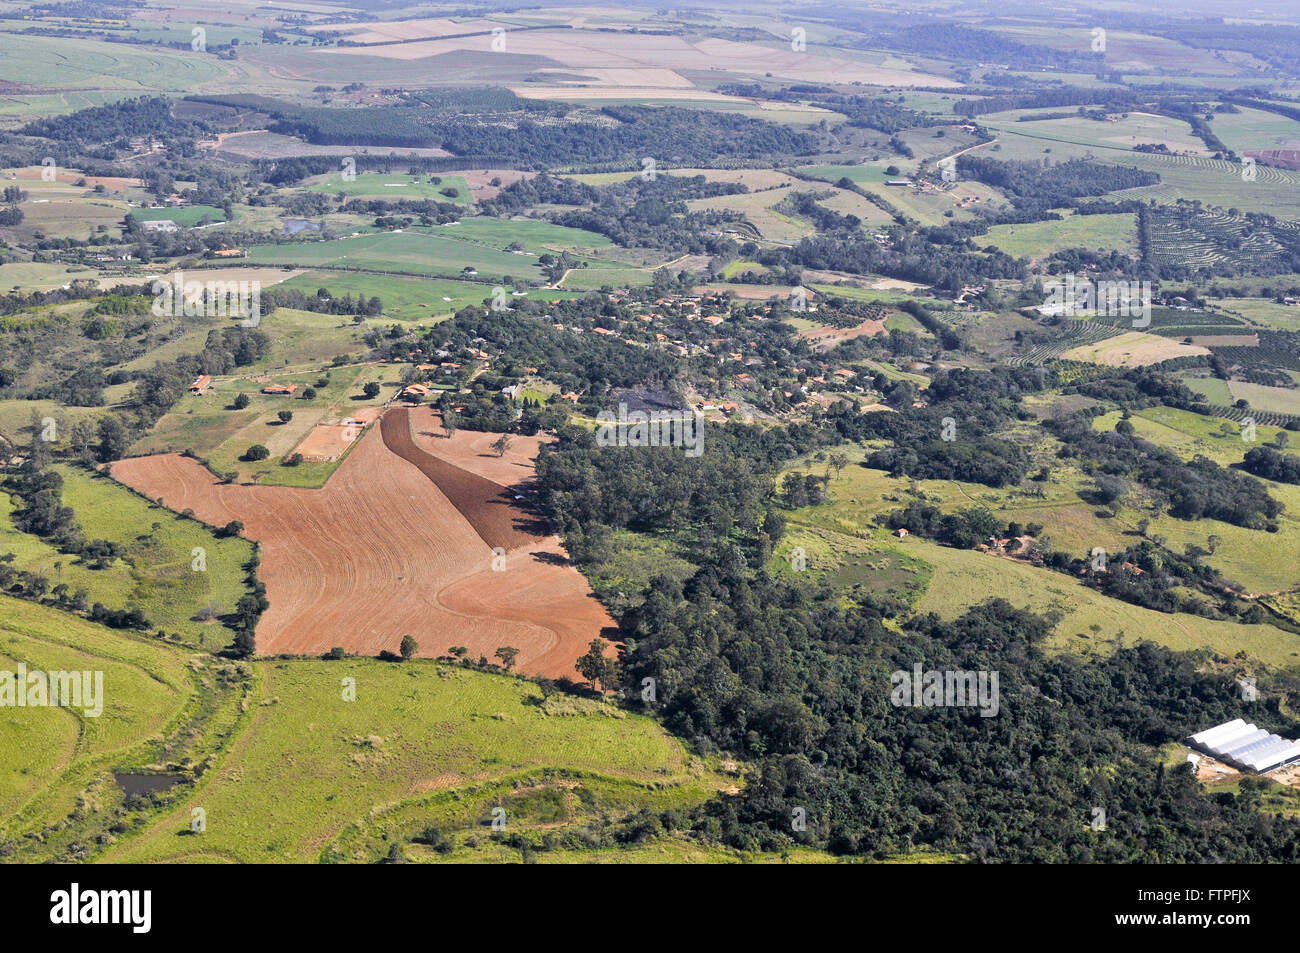 Aerial view of the countryside nearby municipality of Jaguariuna - Stock Image